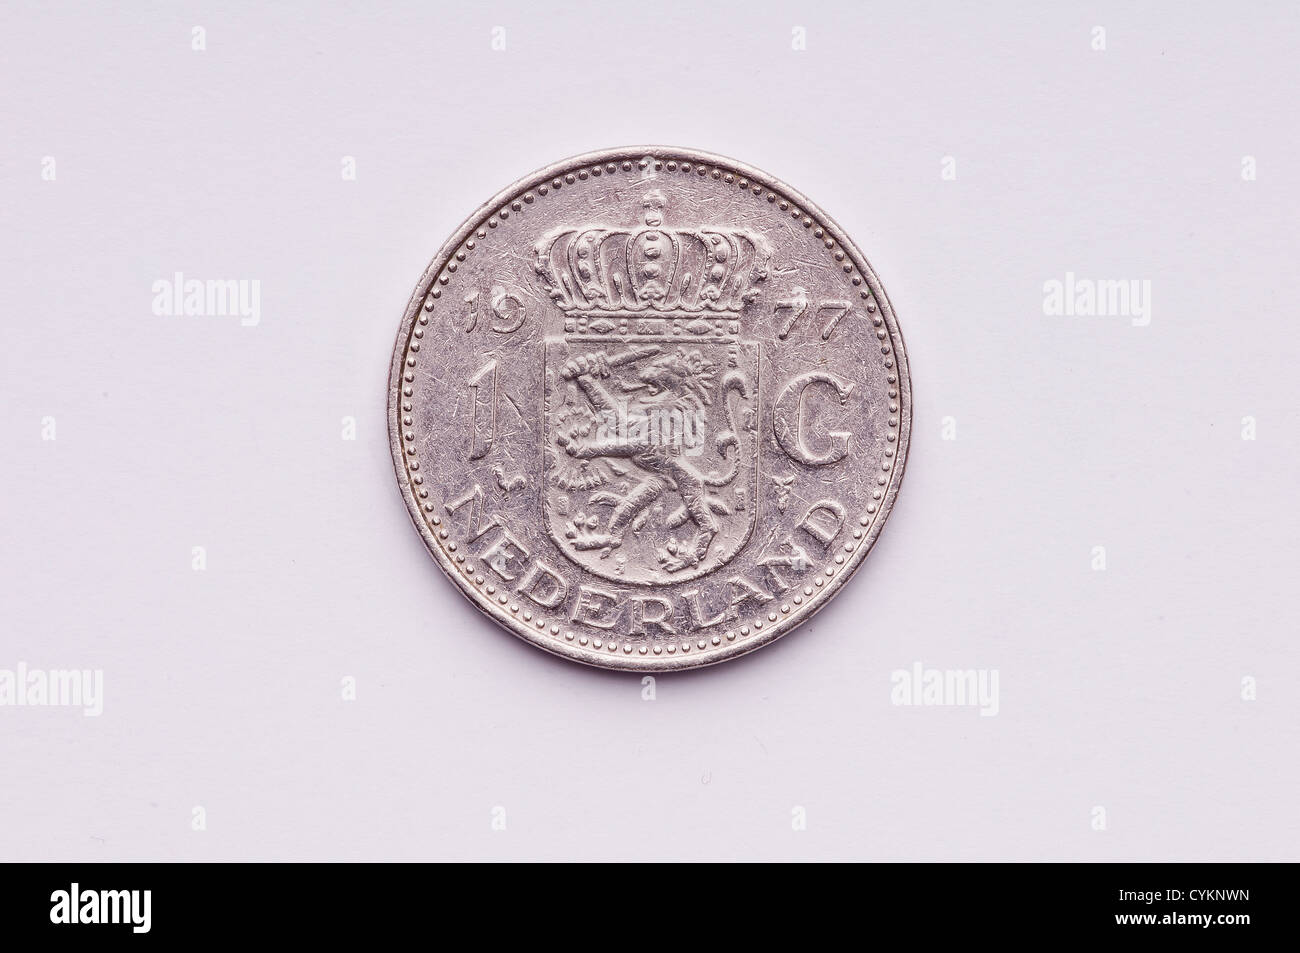 A netherlands coin - Stock Image